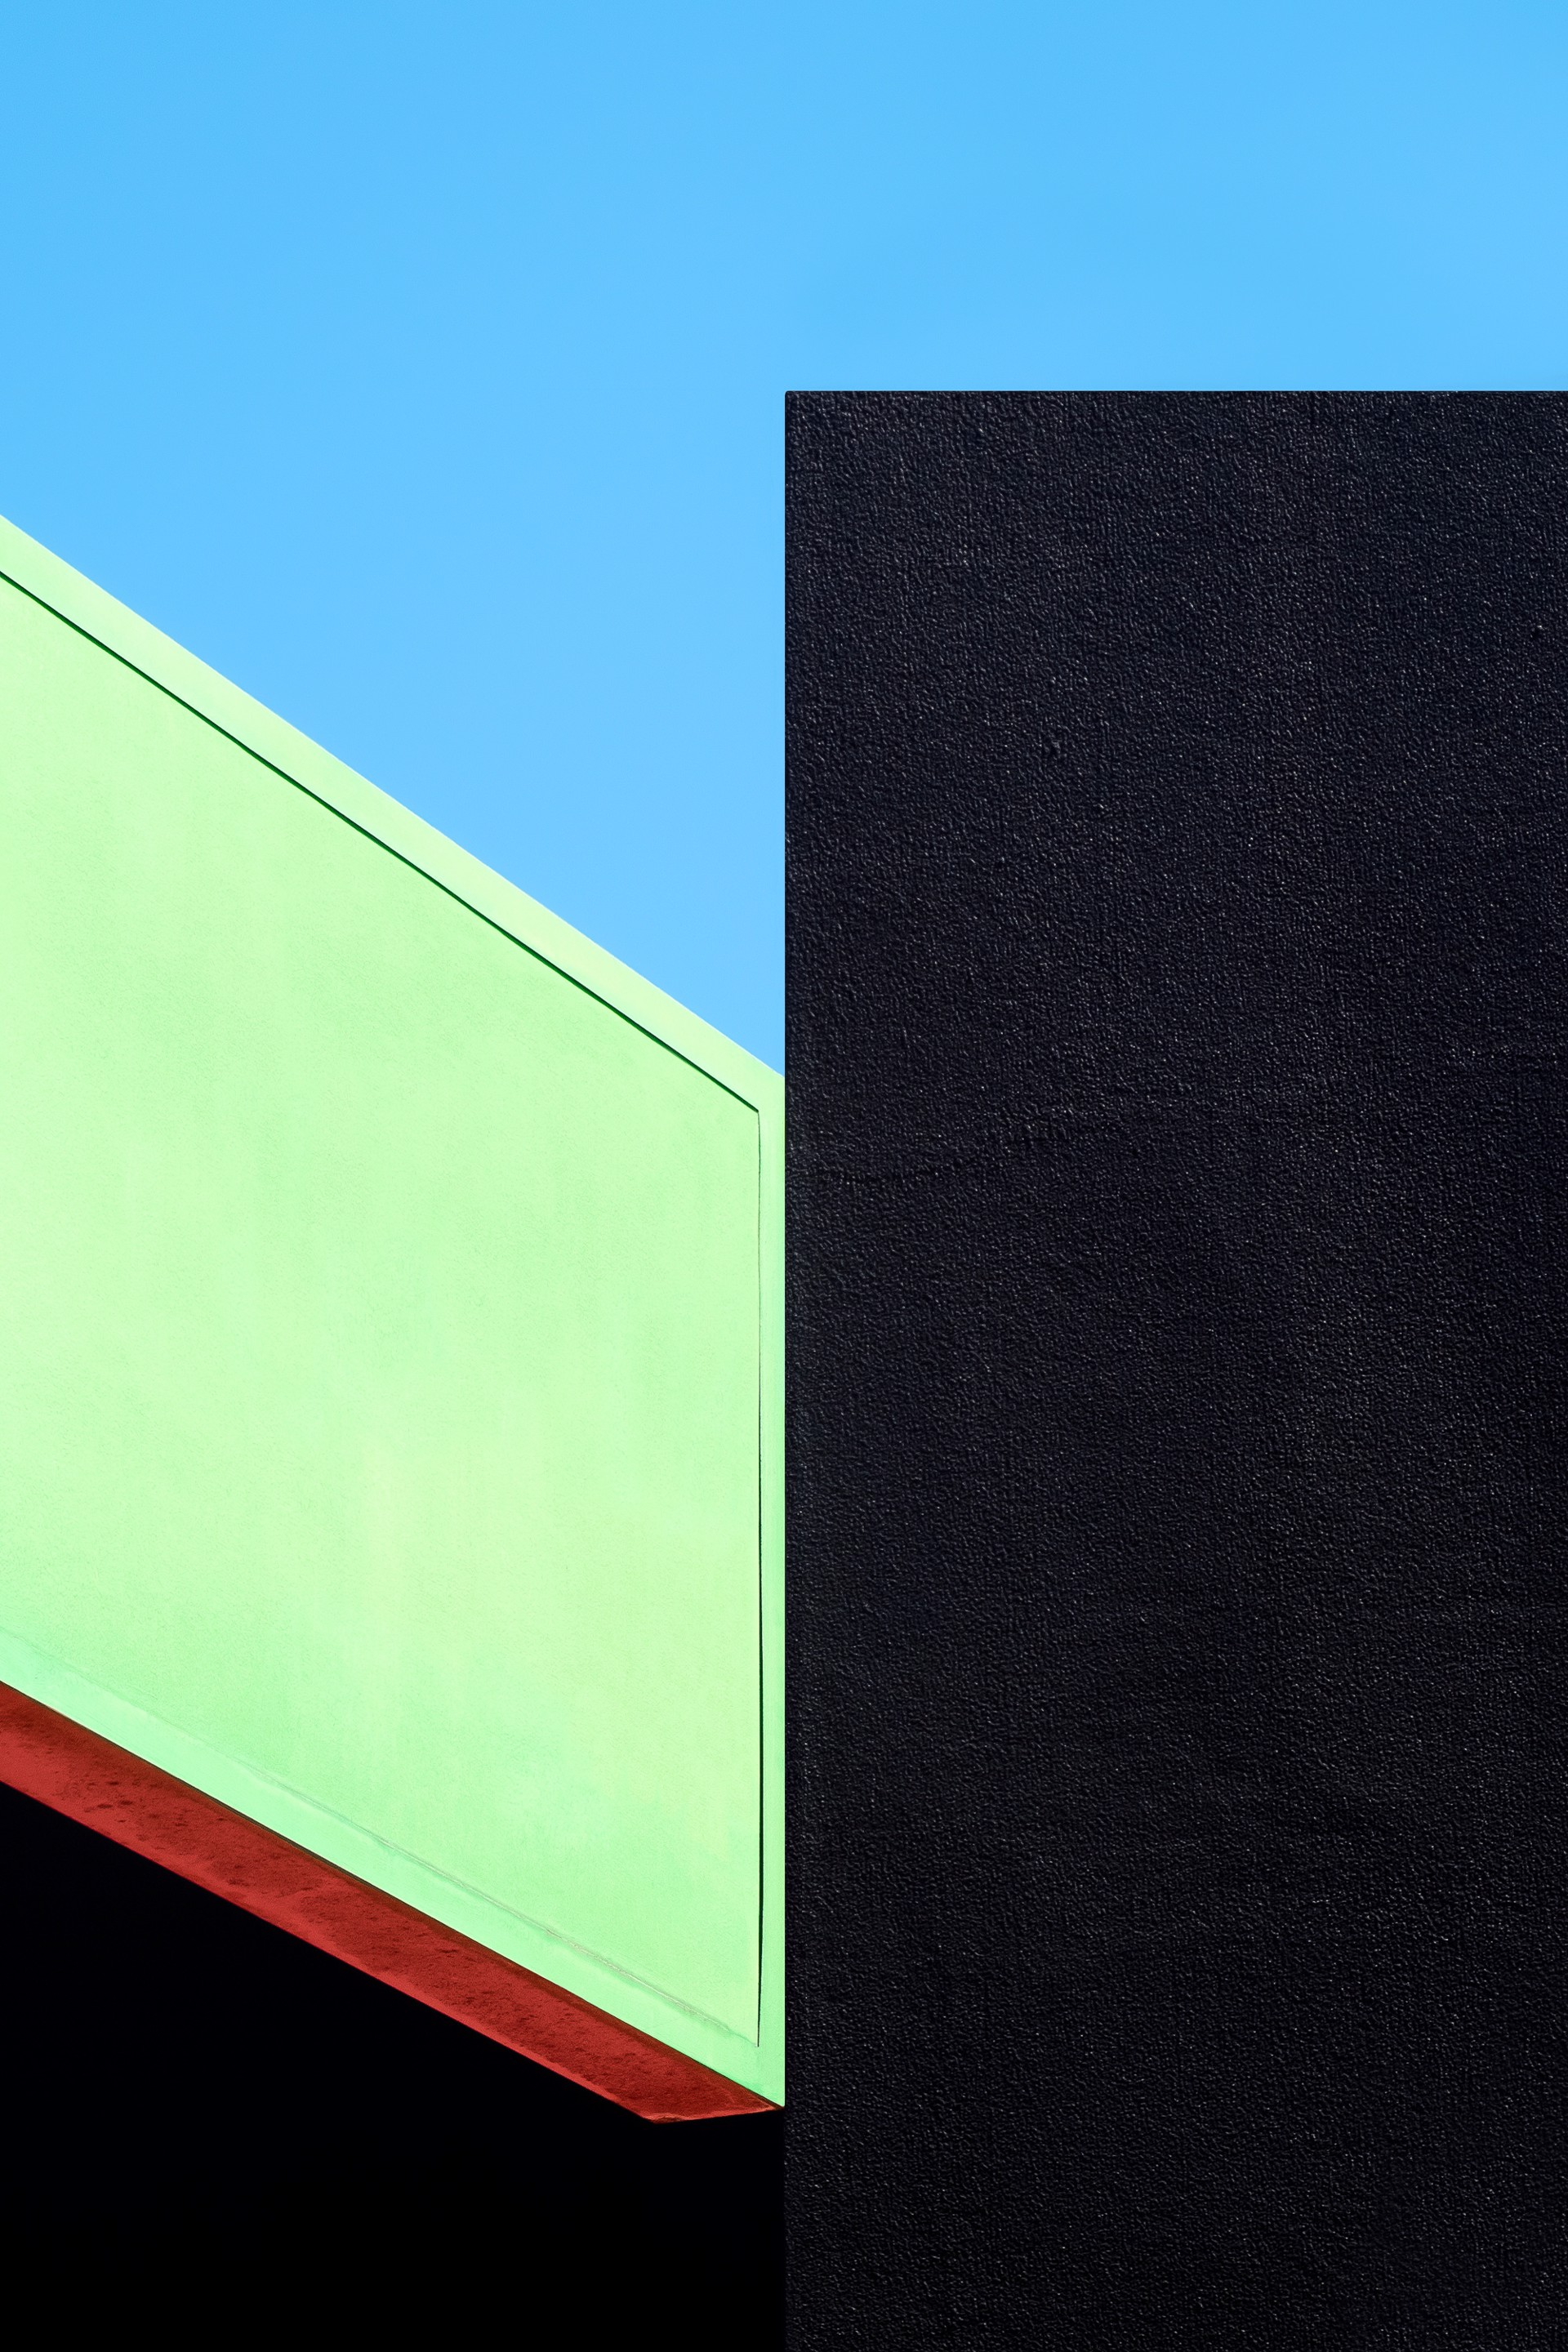 Green, Black and Blue 2 by Jon Setter